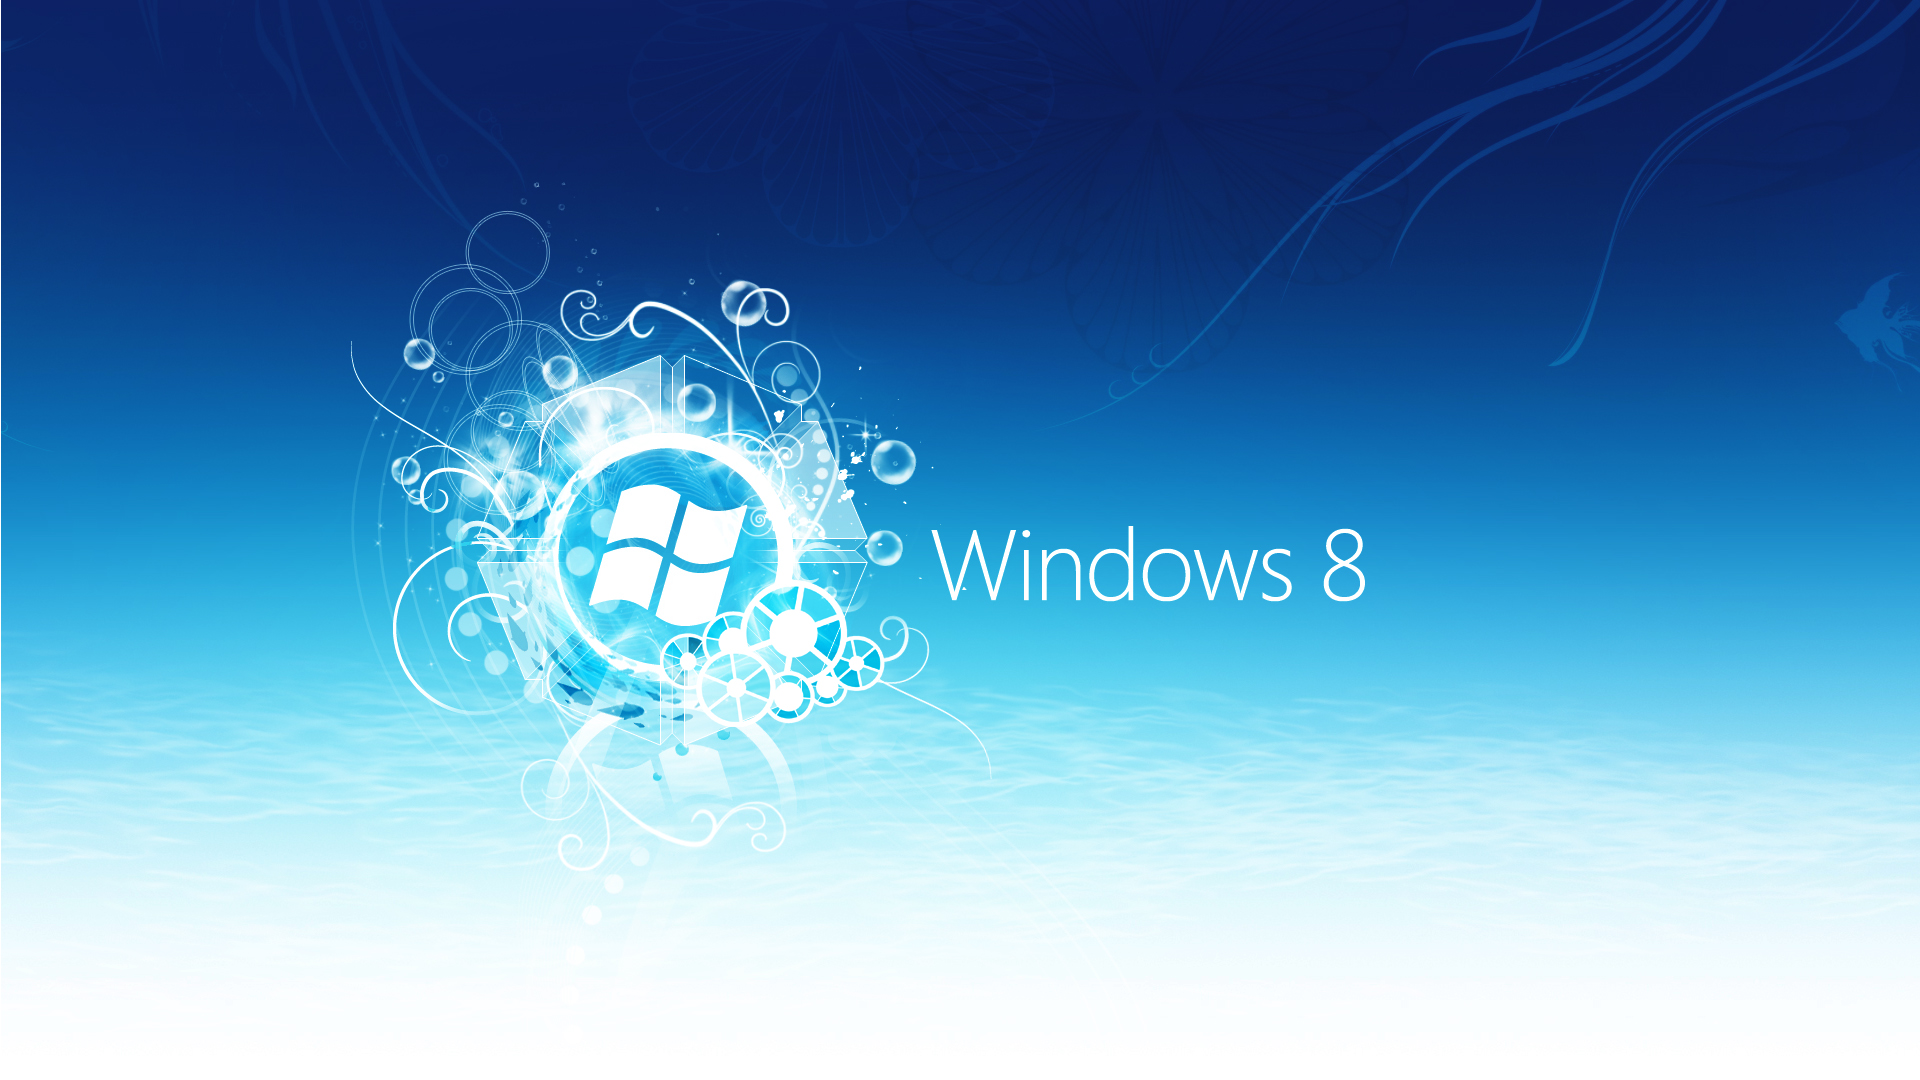 Windows 8 HD Wallpaper 3d With Resolutions 19201080 Pixel 1920x1080